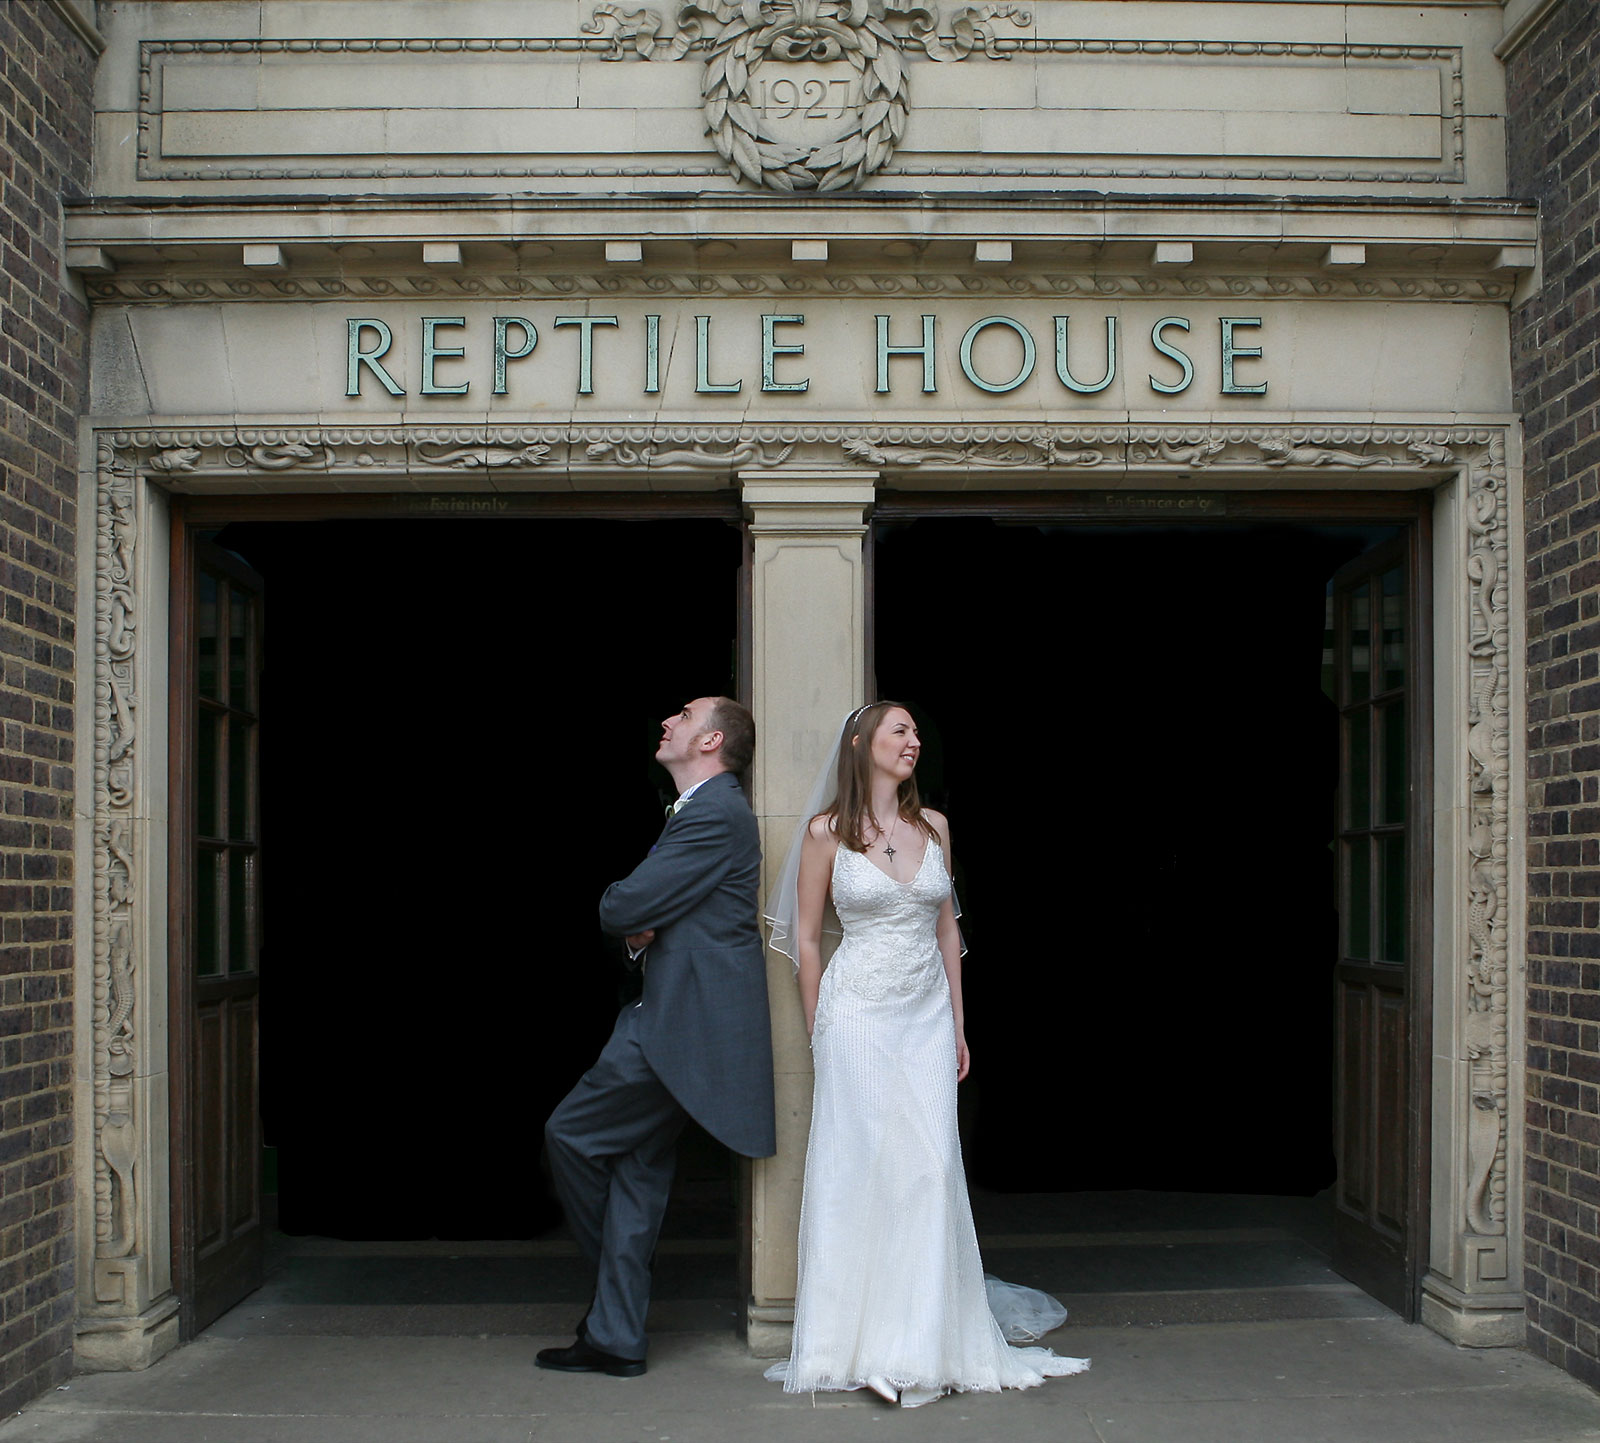 Reptile House London Zoo wedding